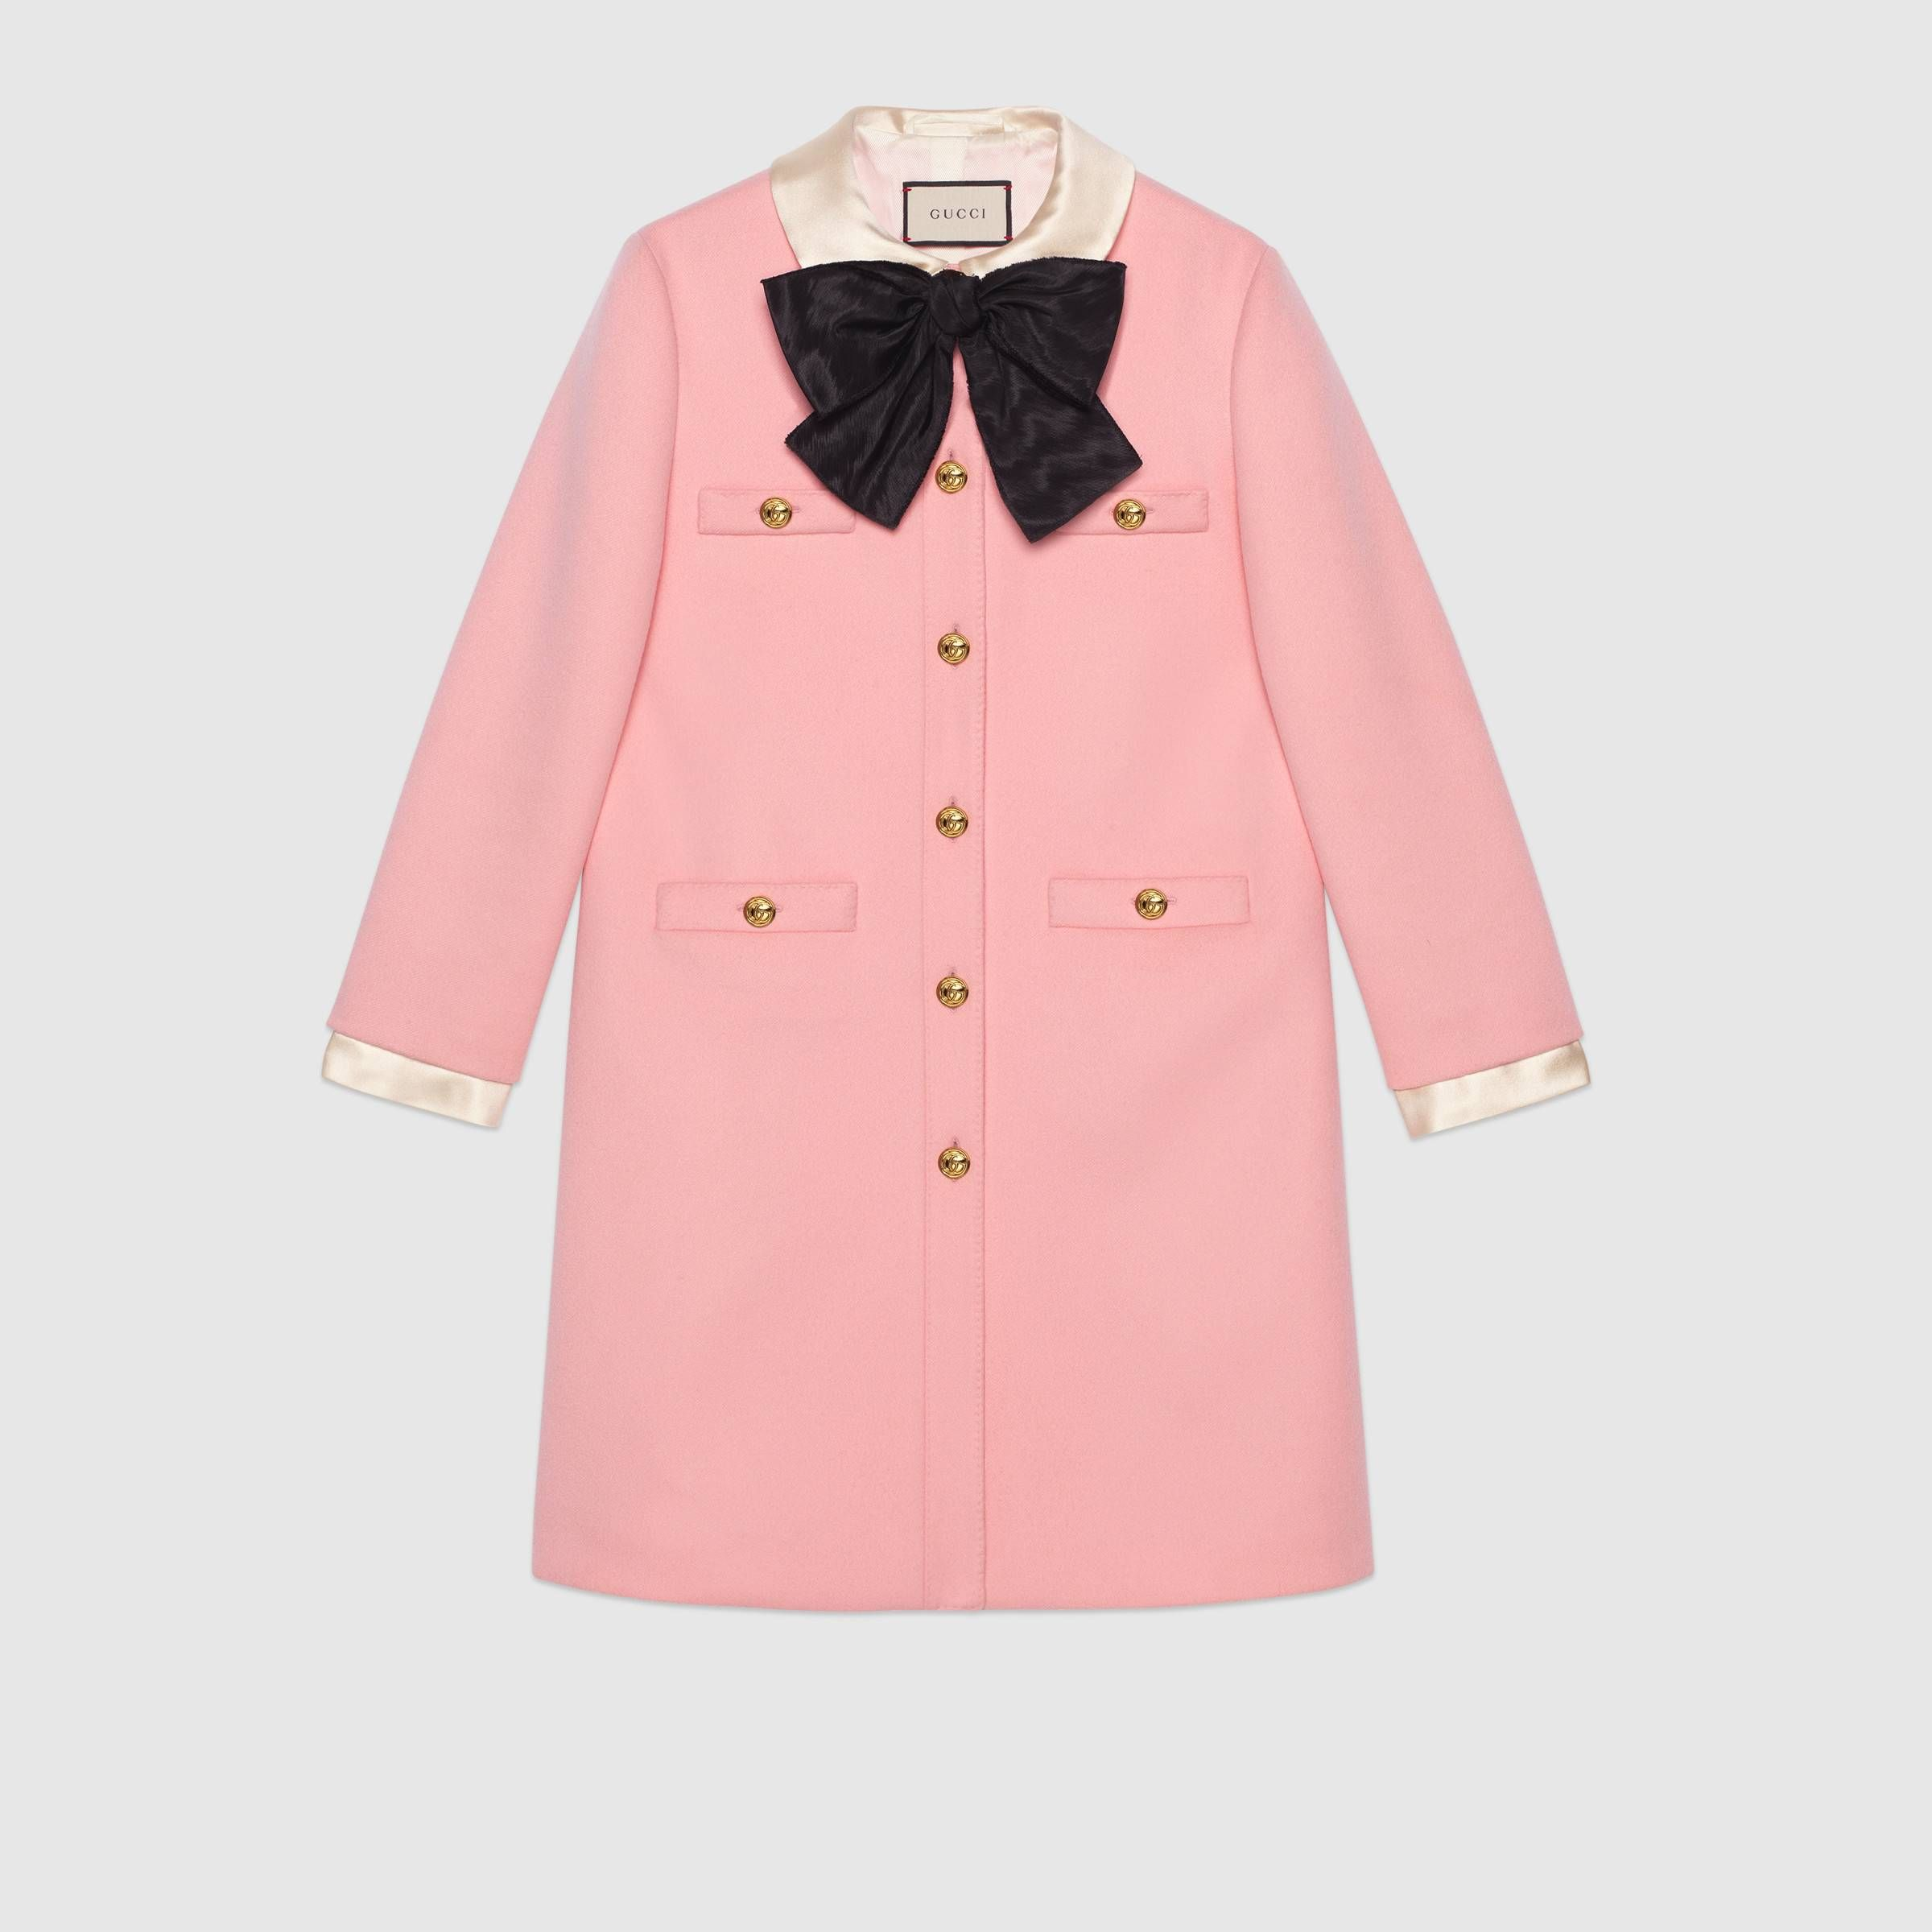 Women Fashion 2018 Elegant Pink Coat To Keep You Pretty And Warm This Winter Gucci Wool Coat With Bow Coats For Women Outerwear Women Ladies Tops Fashion [ 2400 x 2400 Pixel ]